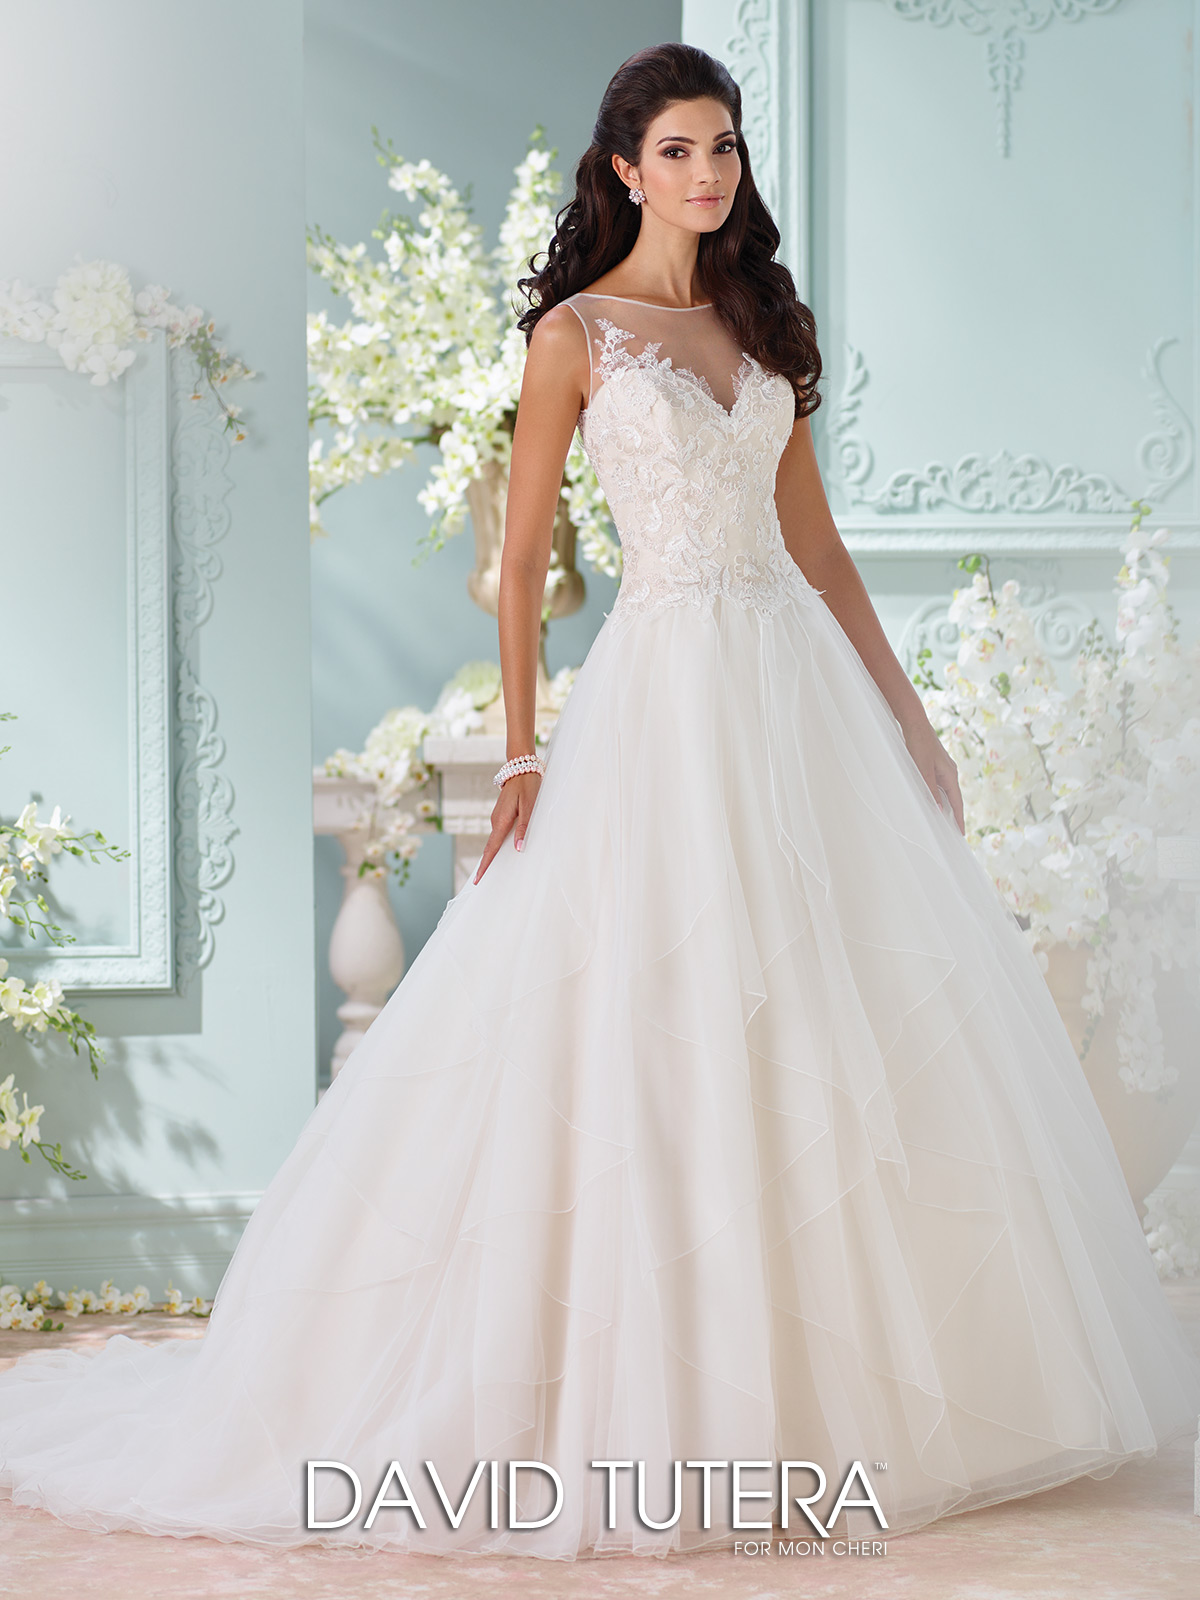 ANN MATTHEWS BRIDAL, ALBUQUERQUE, A-LINE COLLECTION